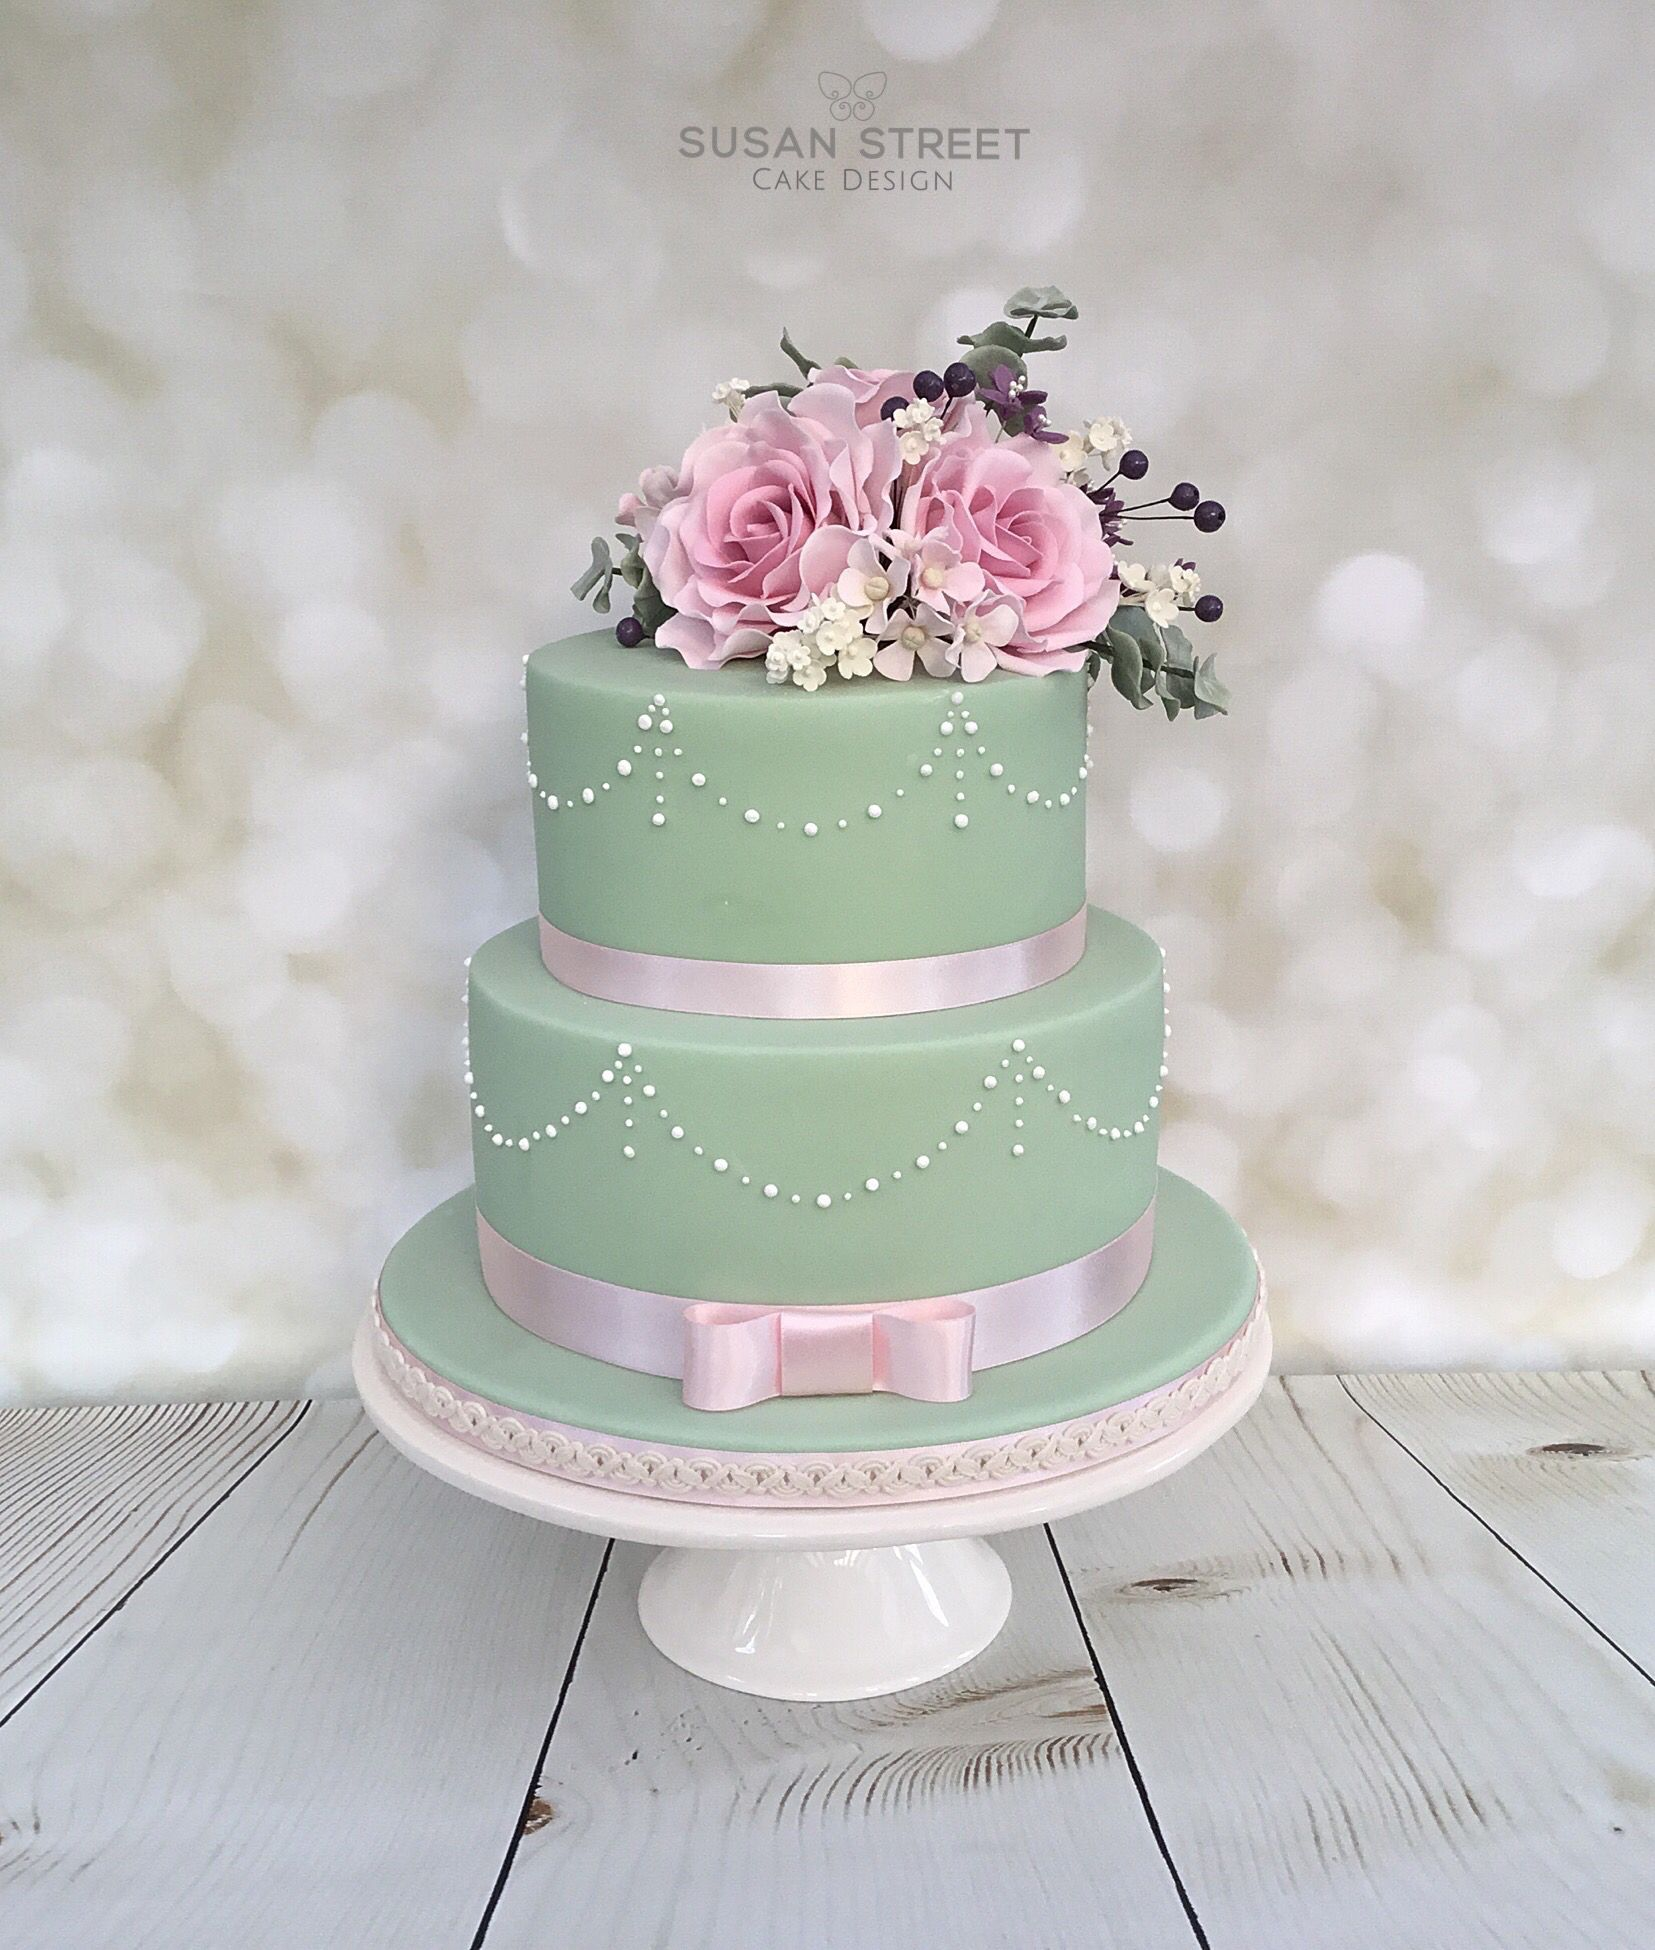 Vintage style two tier birthday cake.